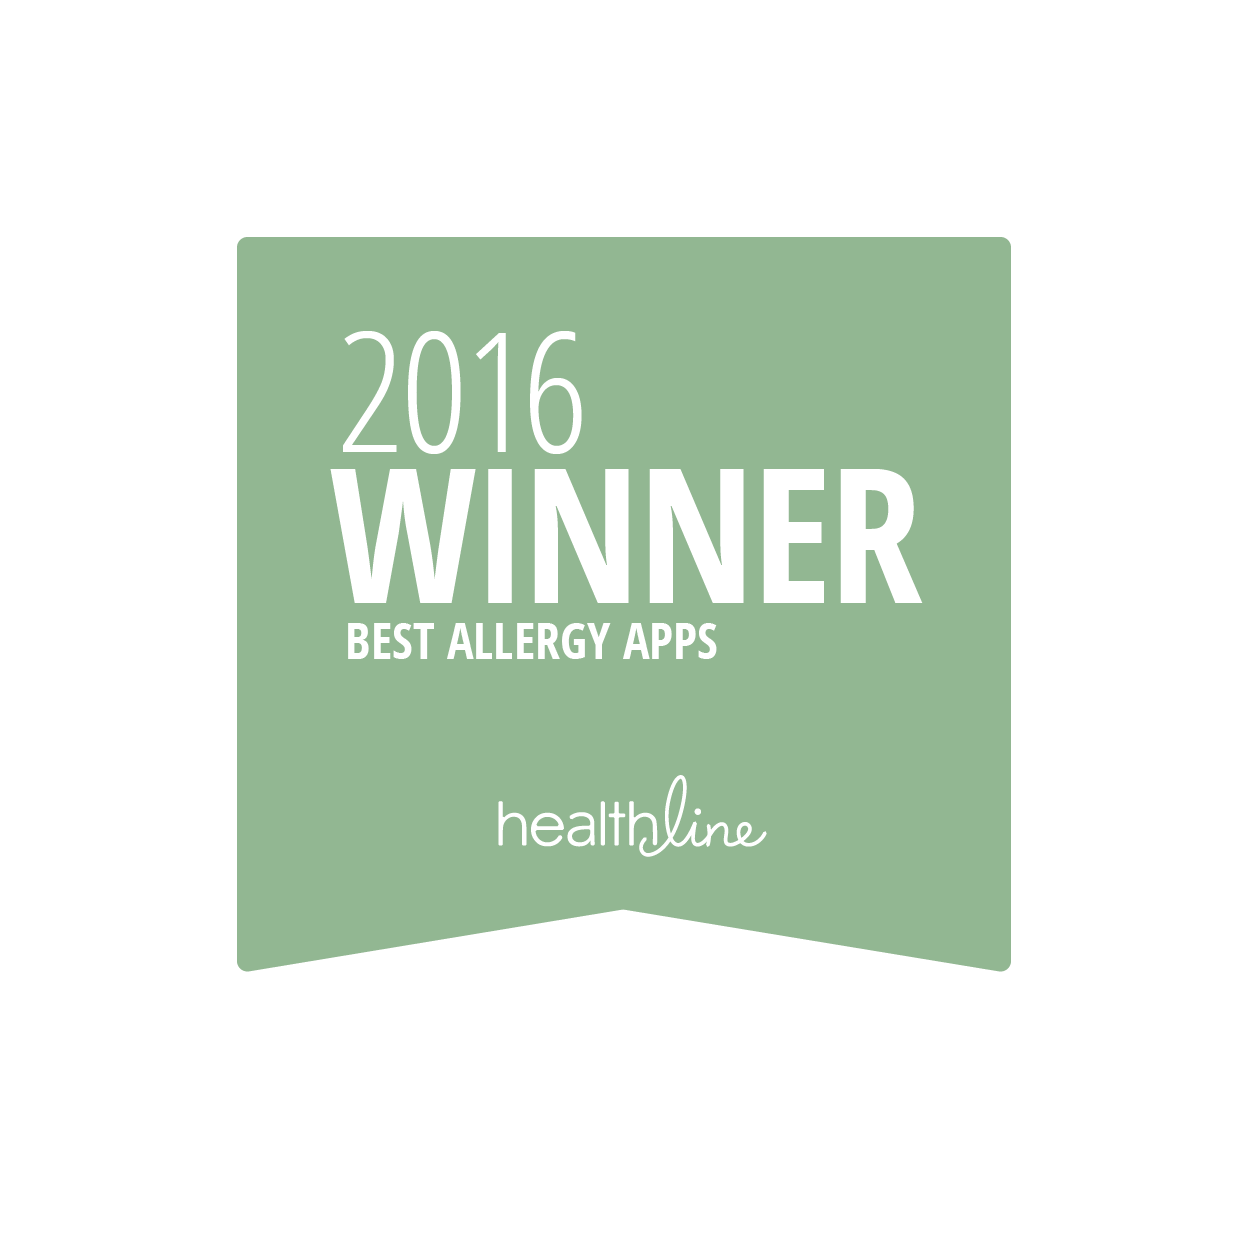 The Best Allergy Apps of 2016